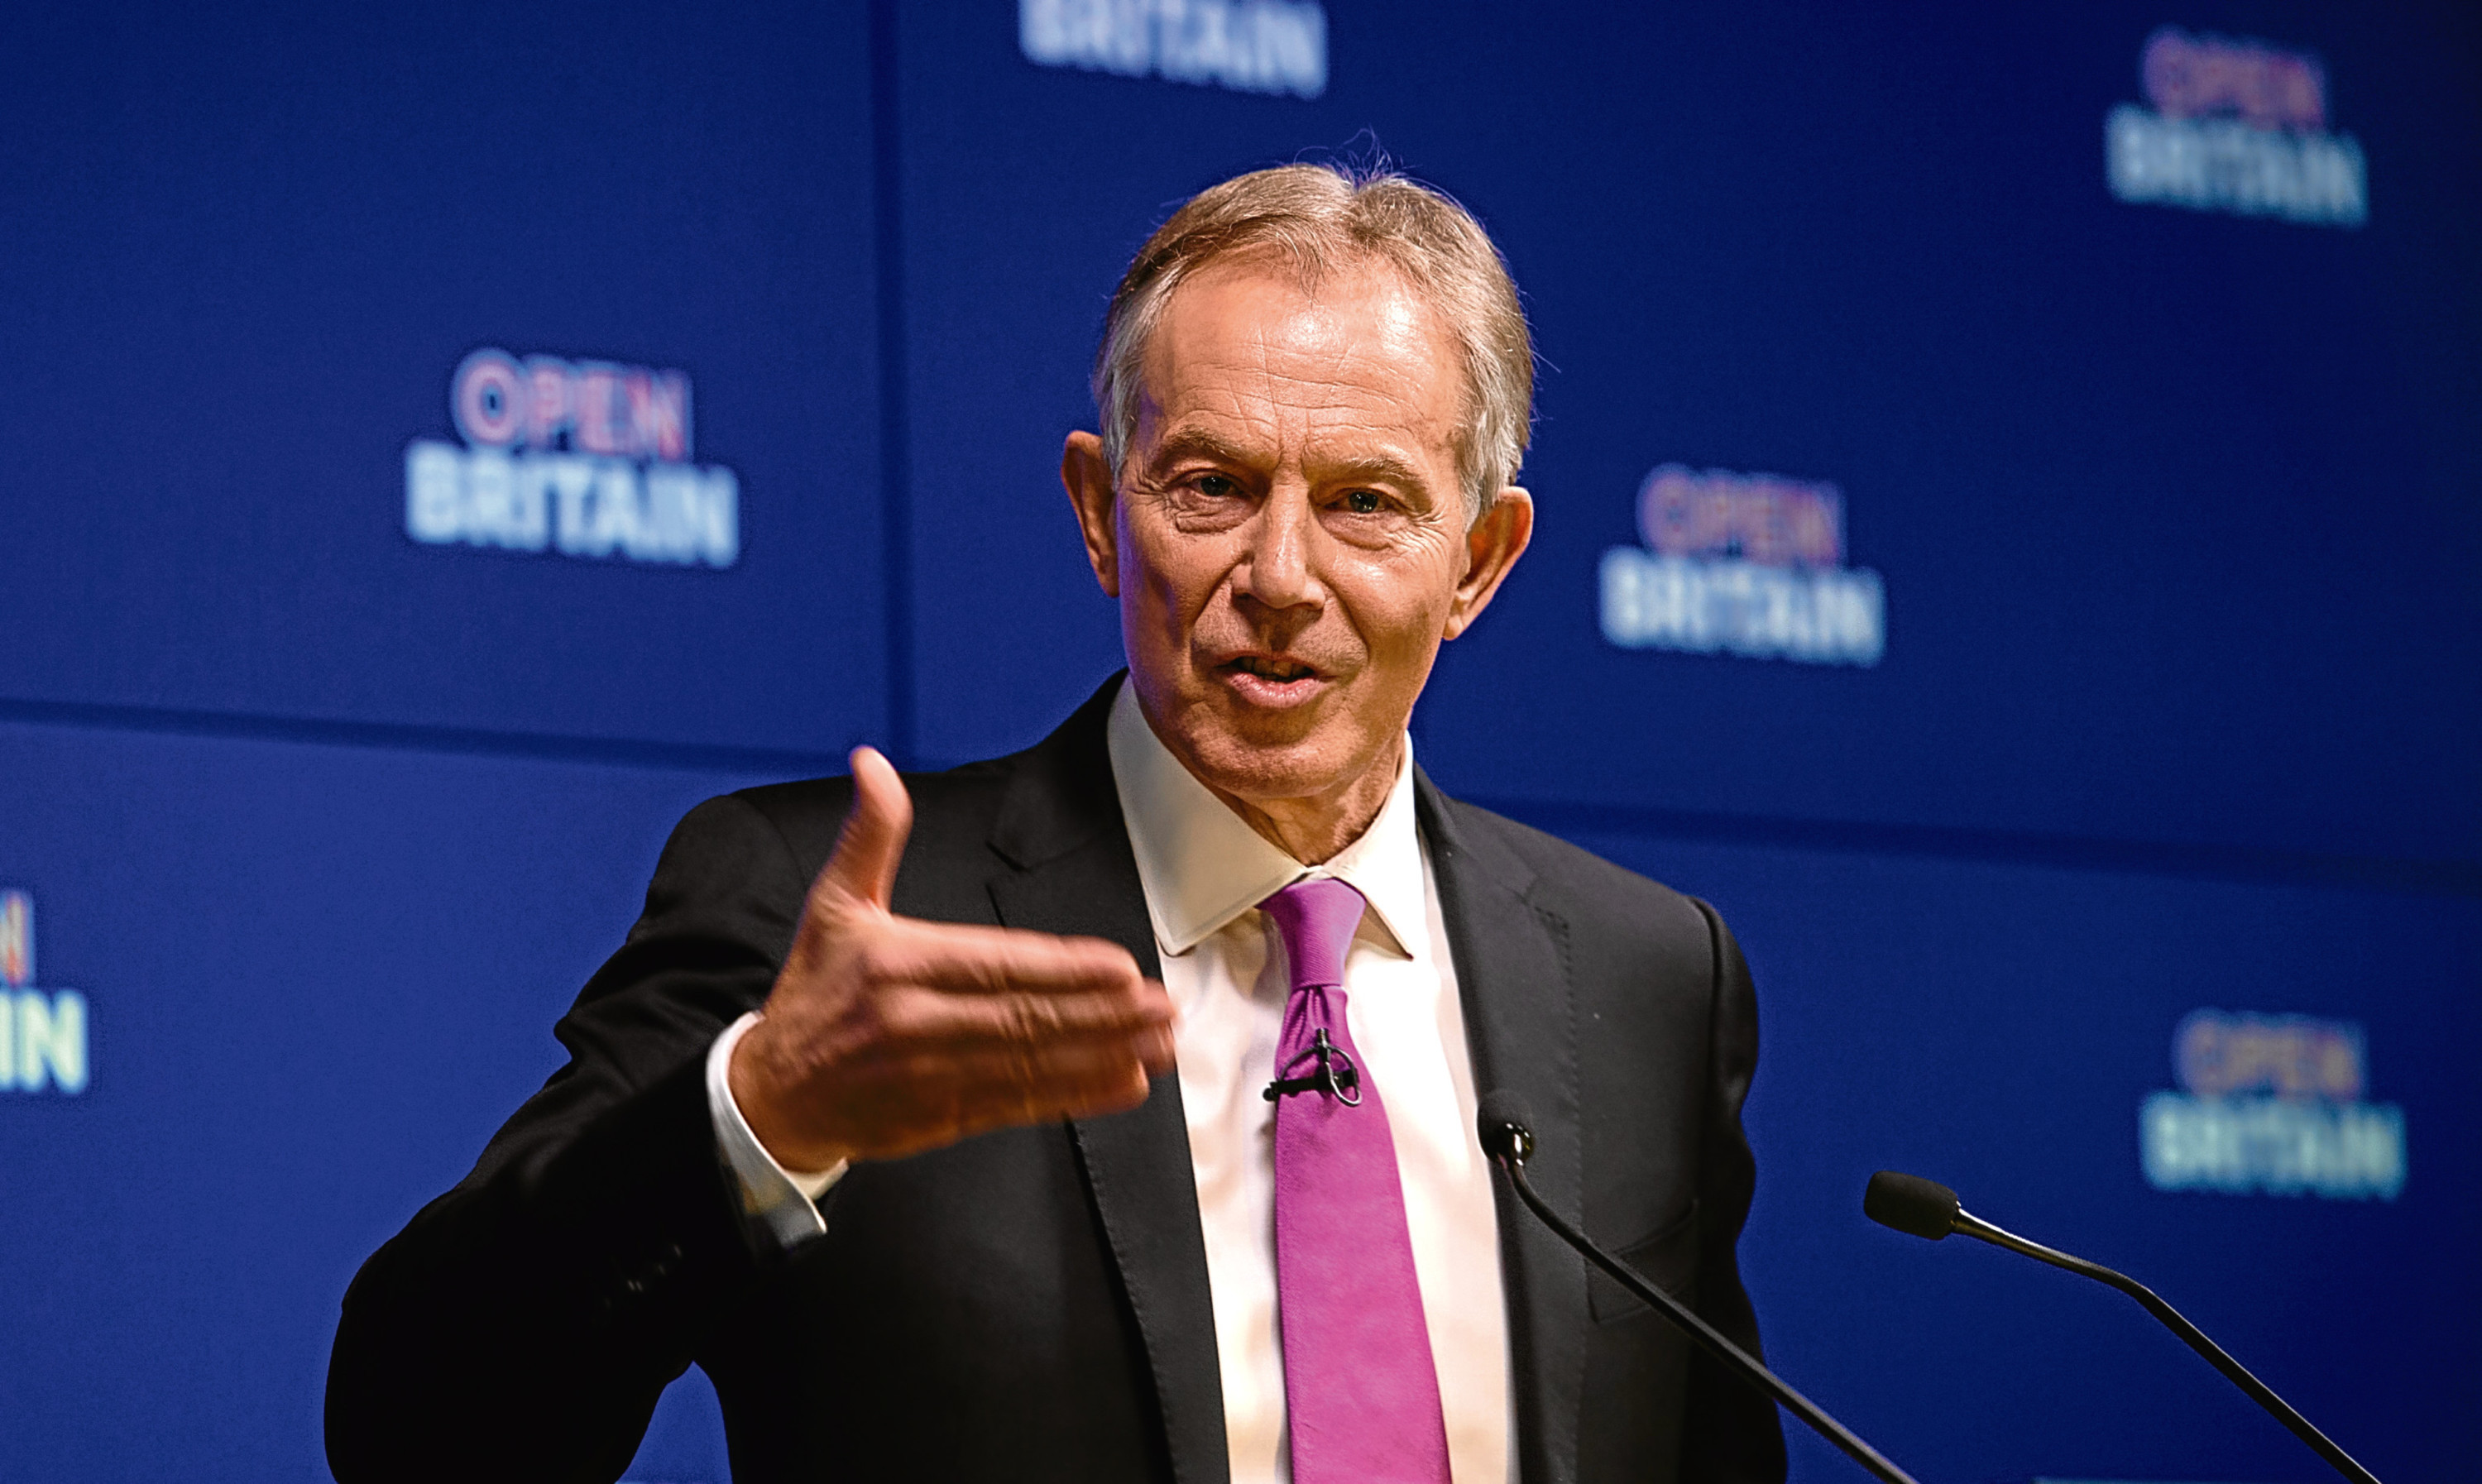 Tony Blair during his speech to Open Britain last week.